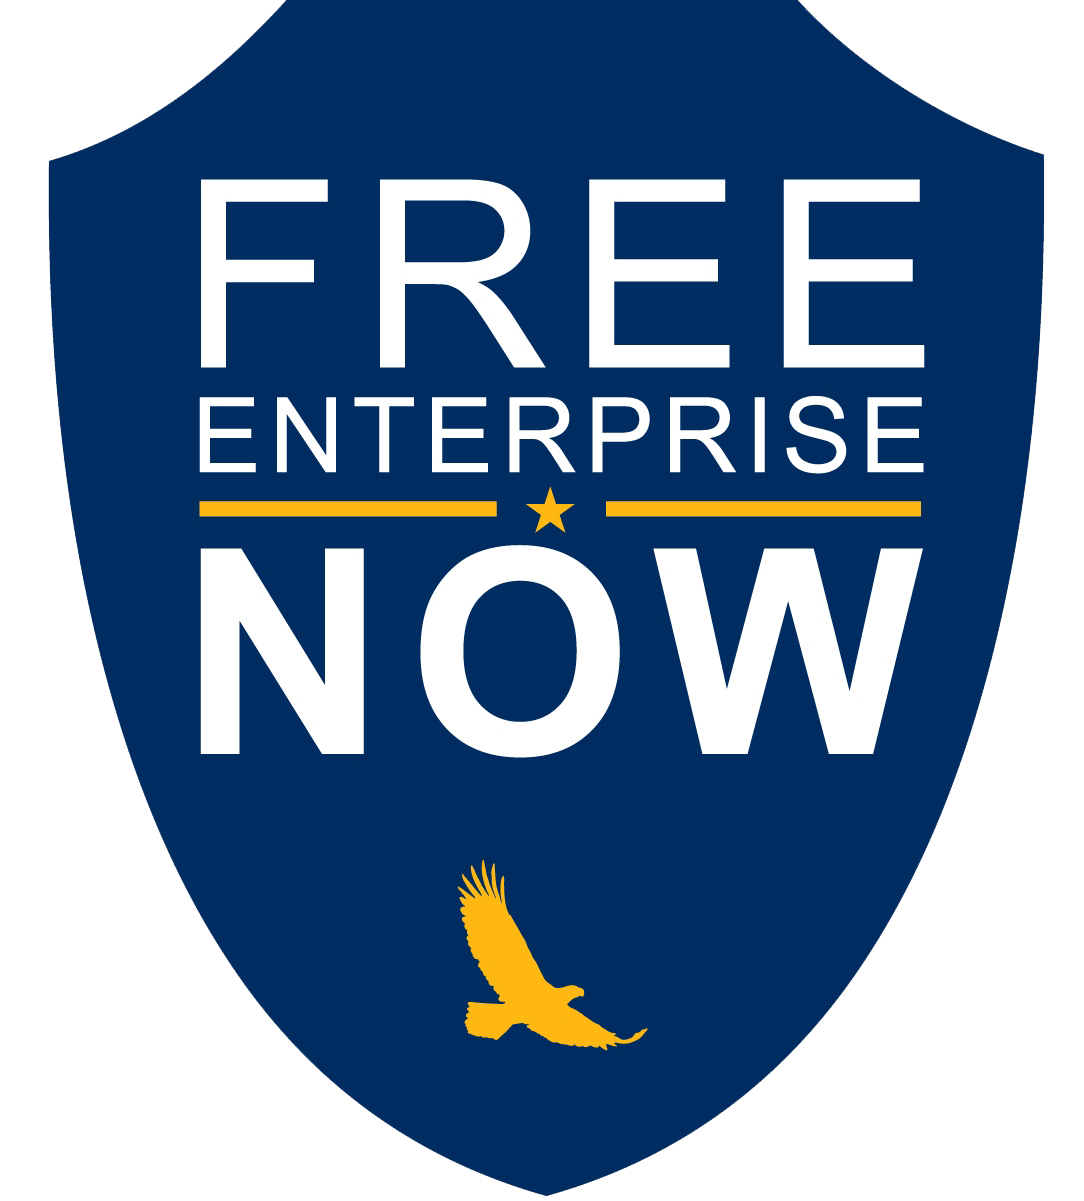 Free Enterprise Now®